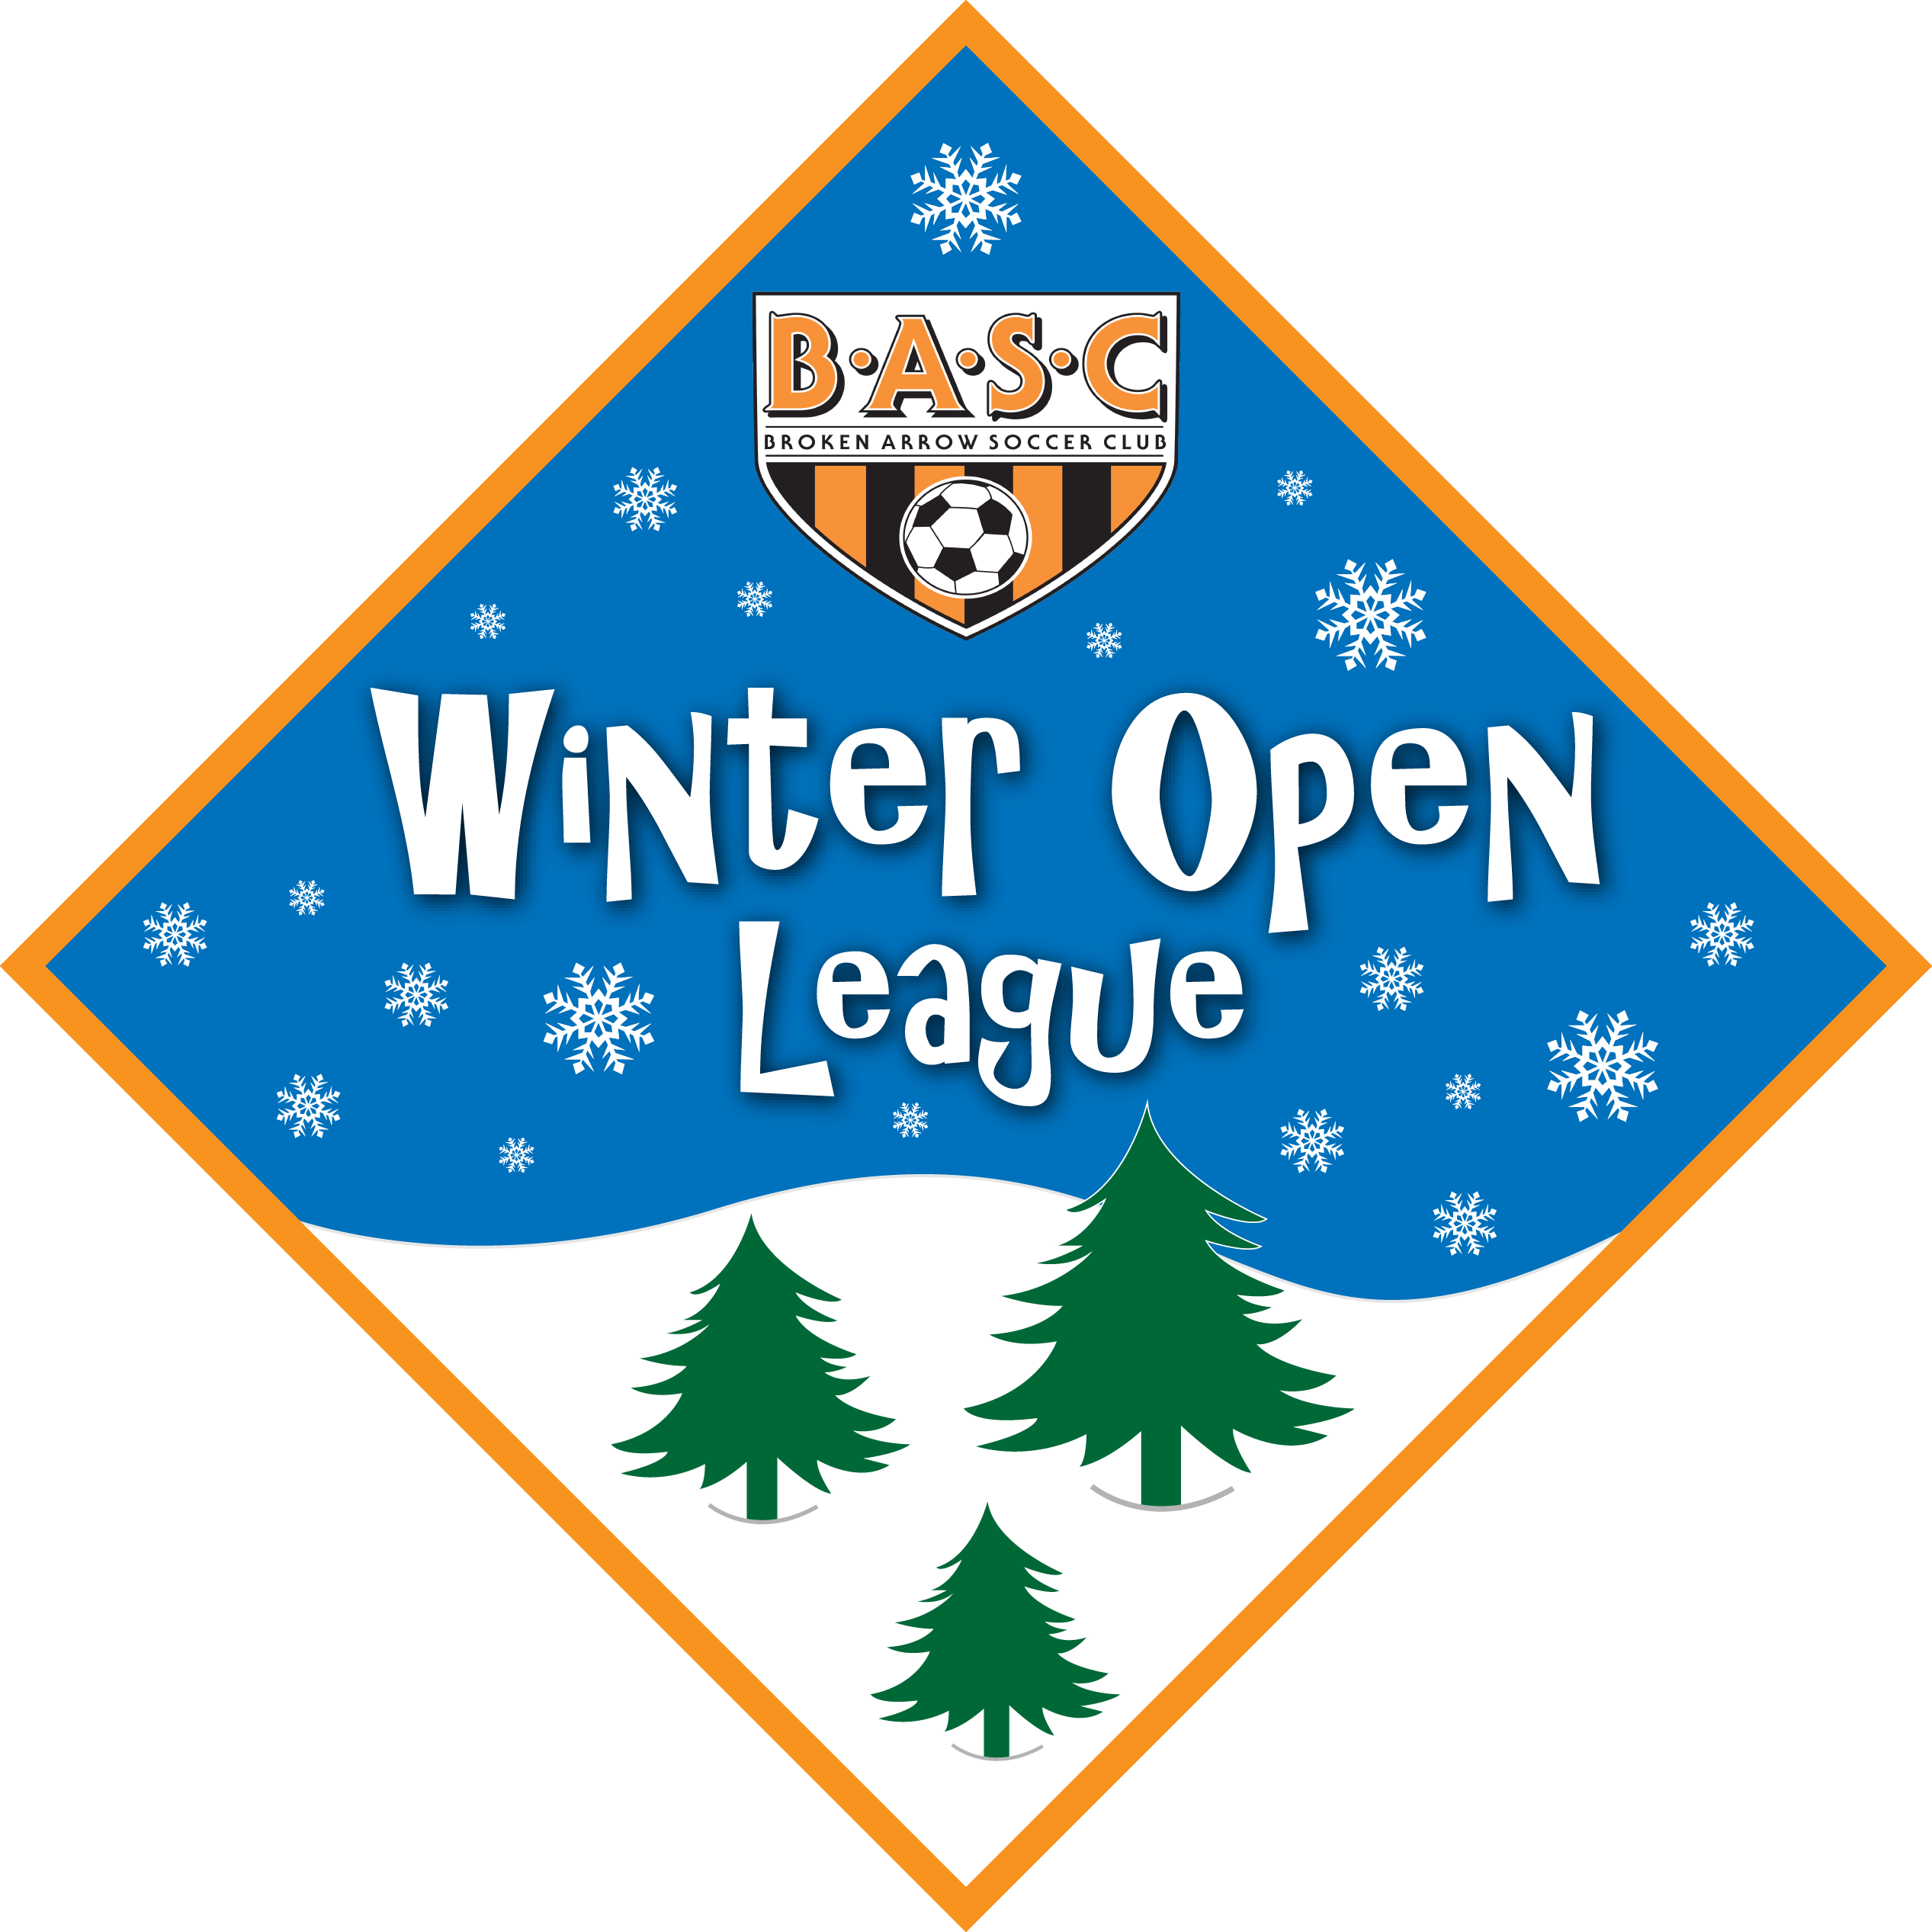 Winter Open League